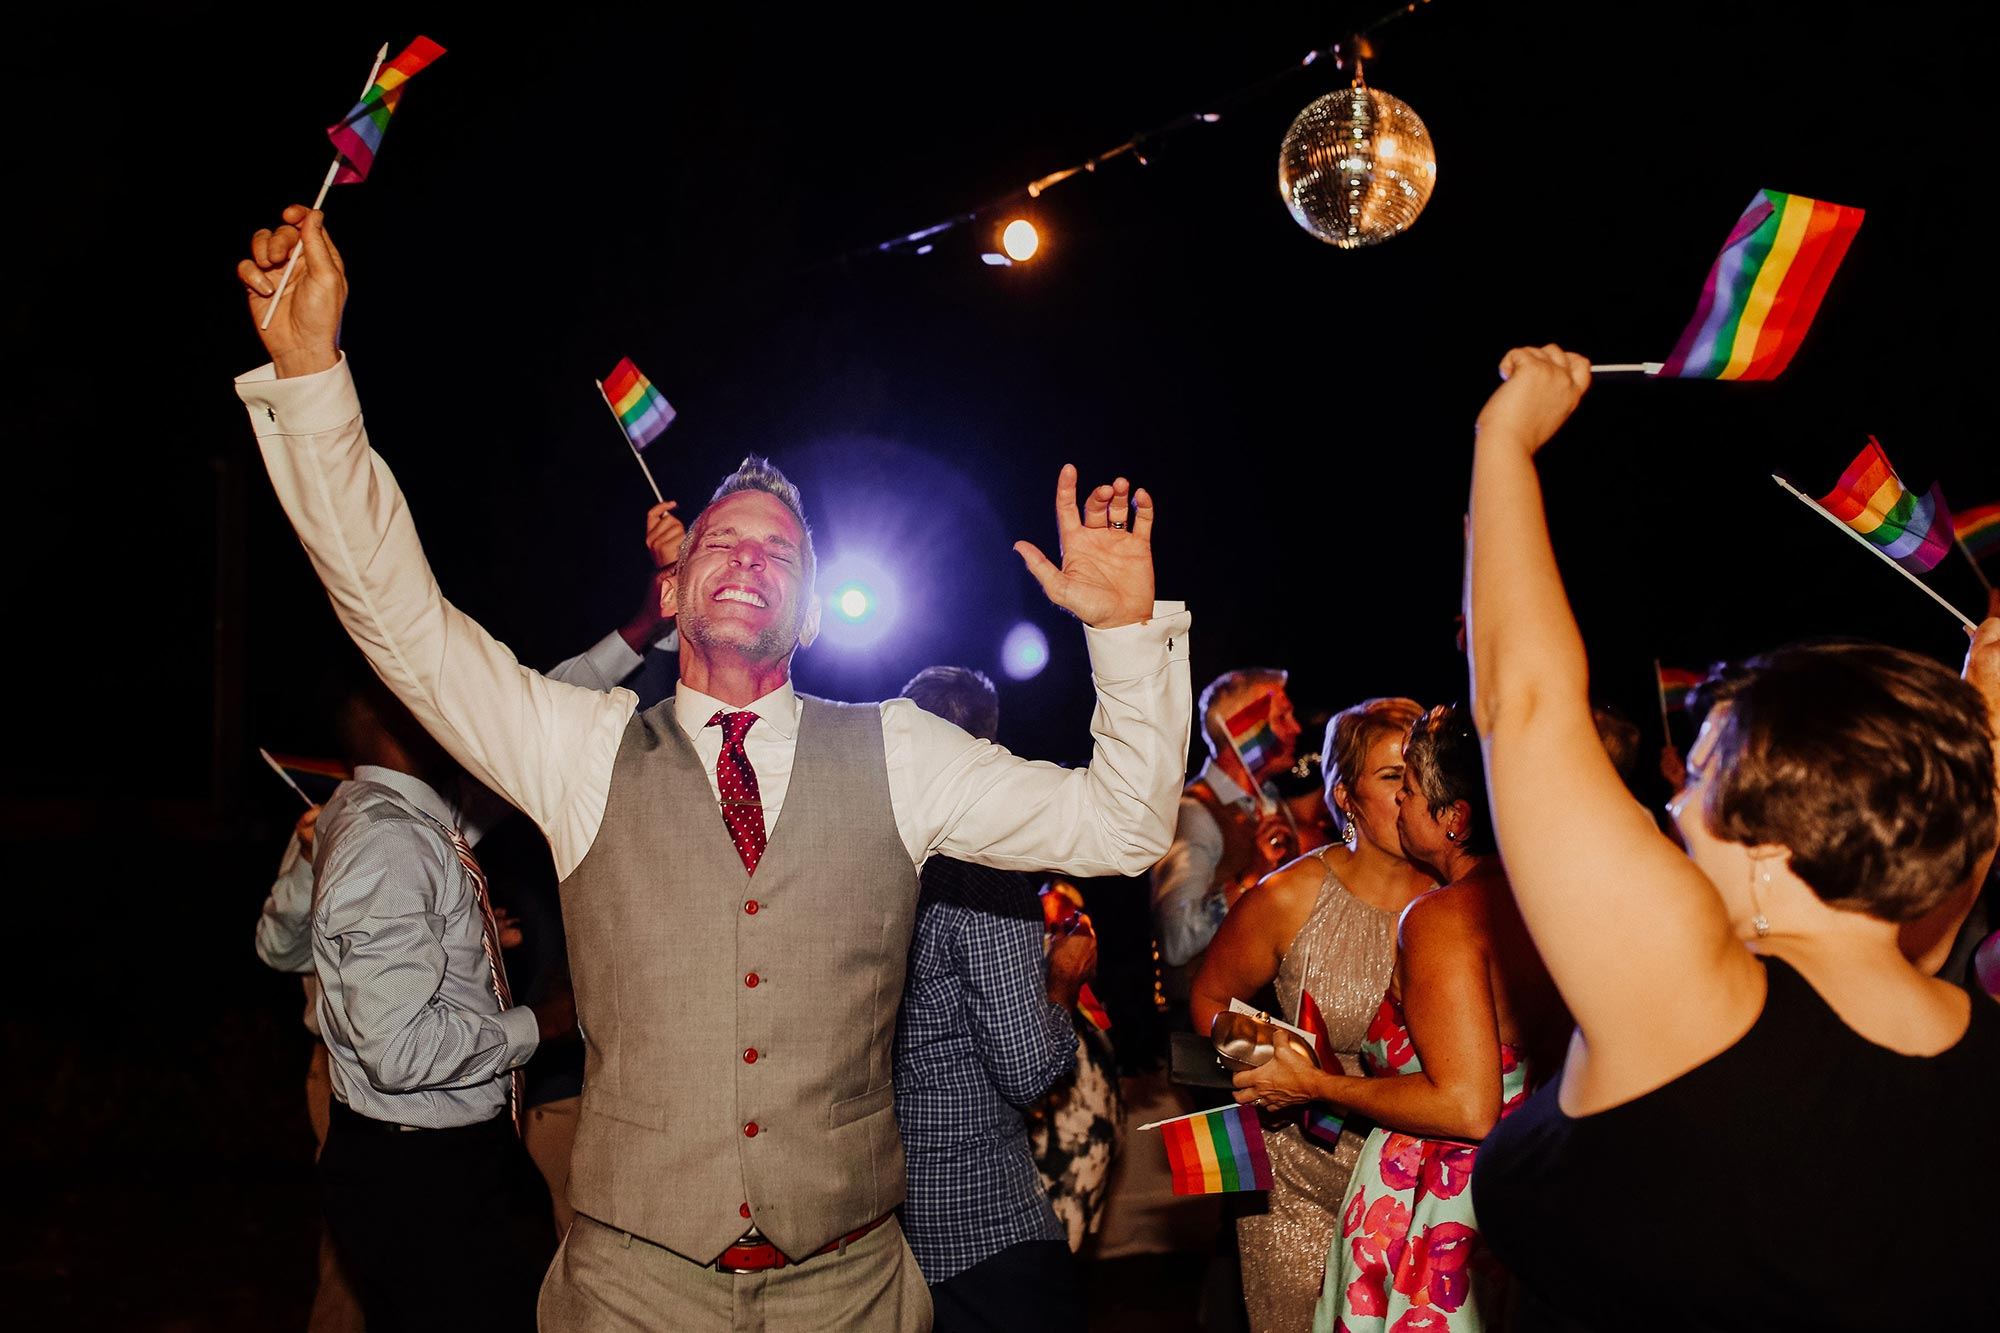 LGBTQ Louisville Kentucky Wedding at Hermitage Farm Crystal Ludwick Photo groom and guests waving rainbow flags on dance floor